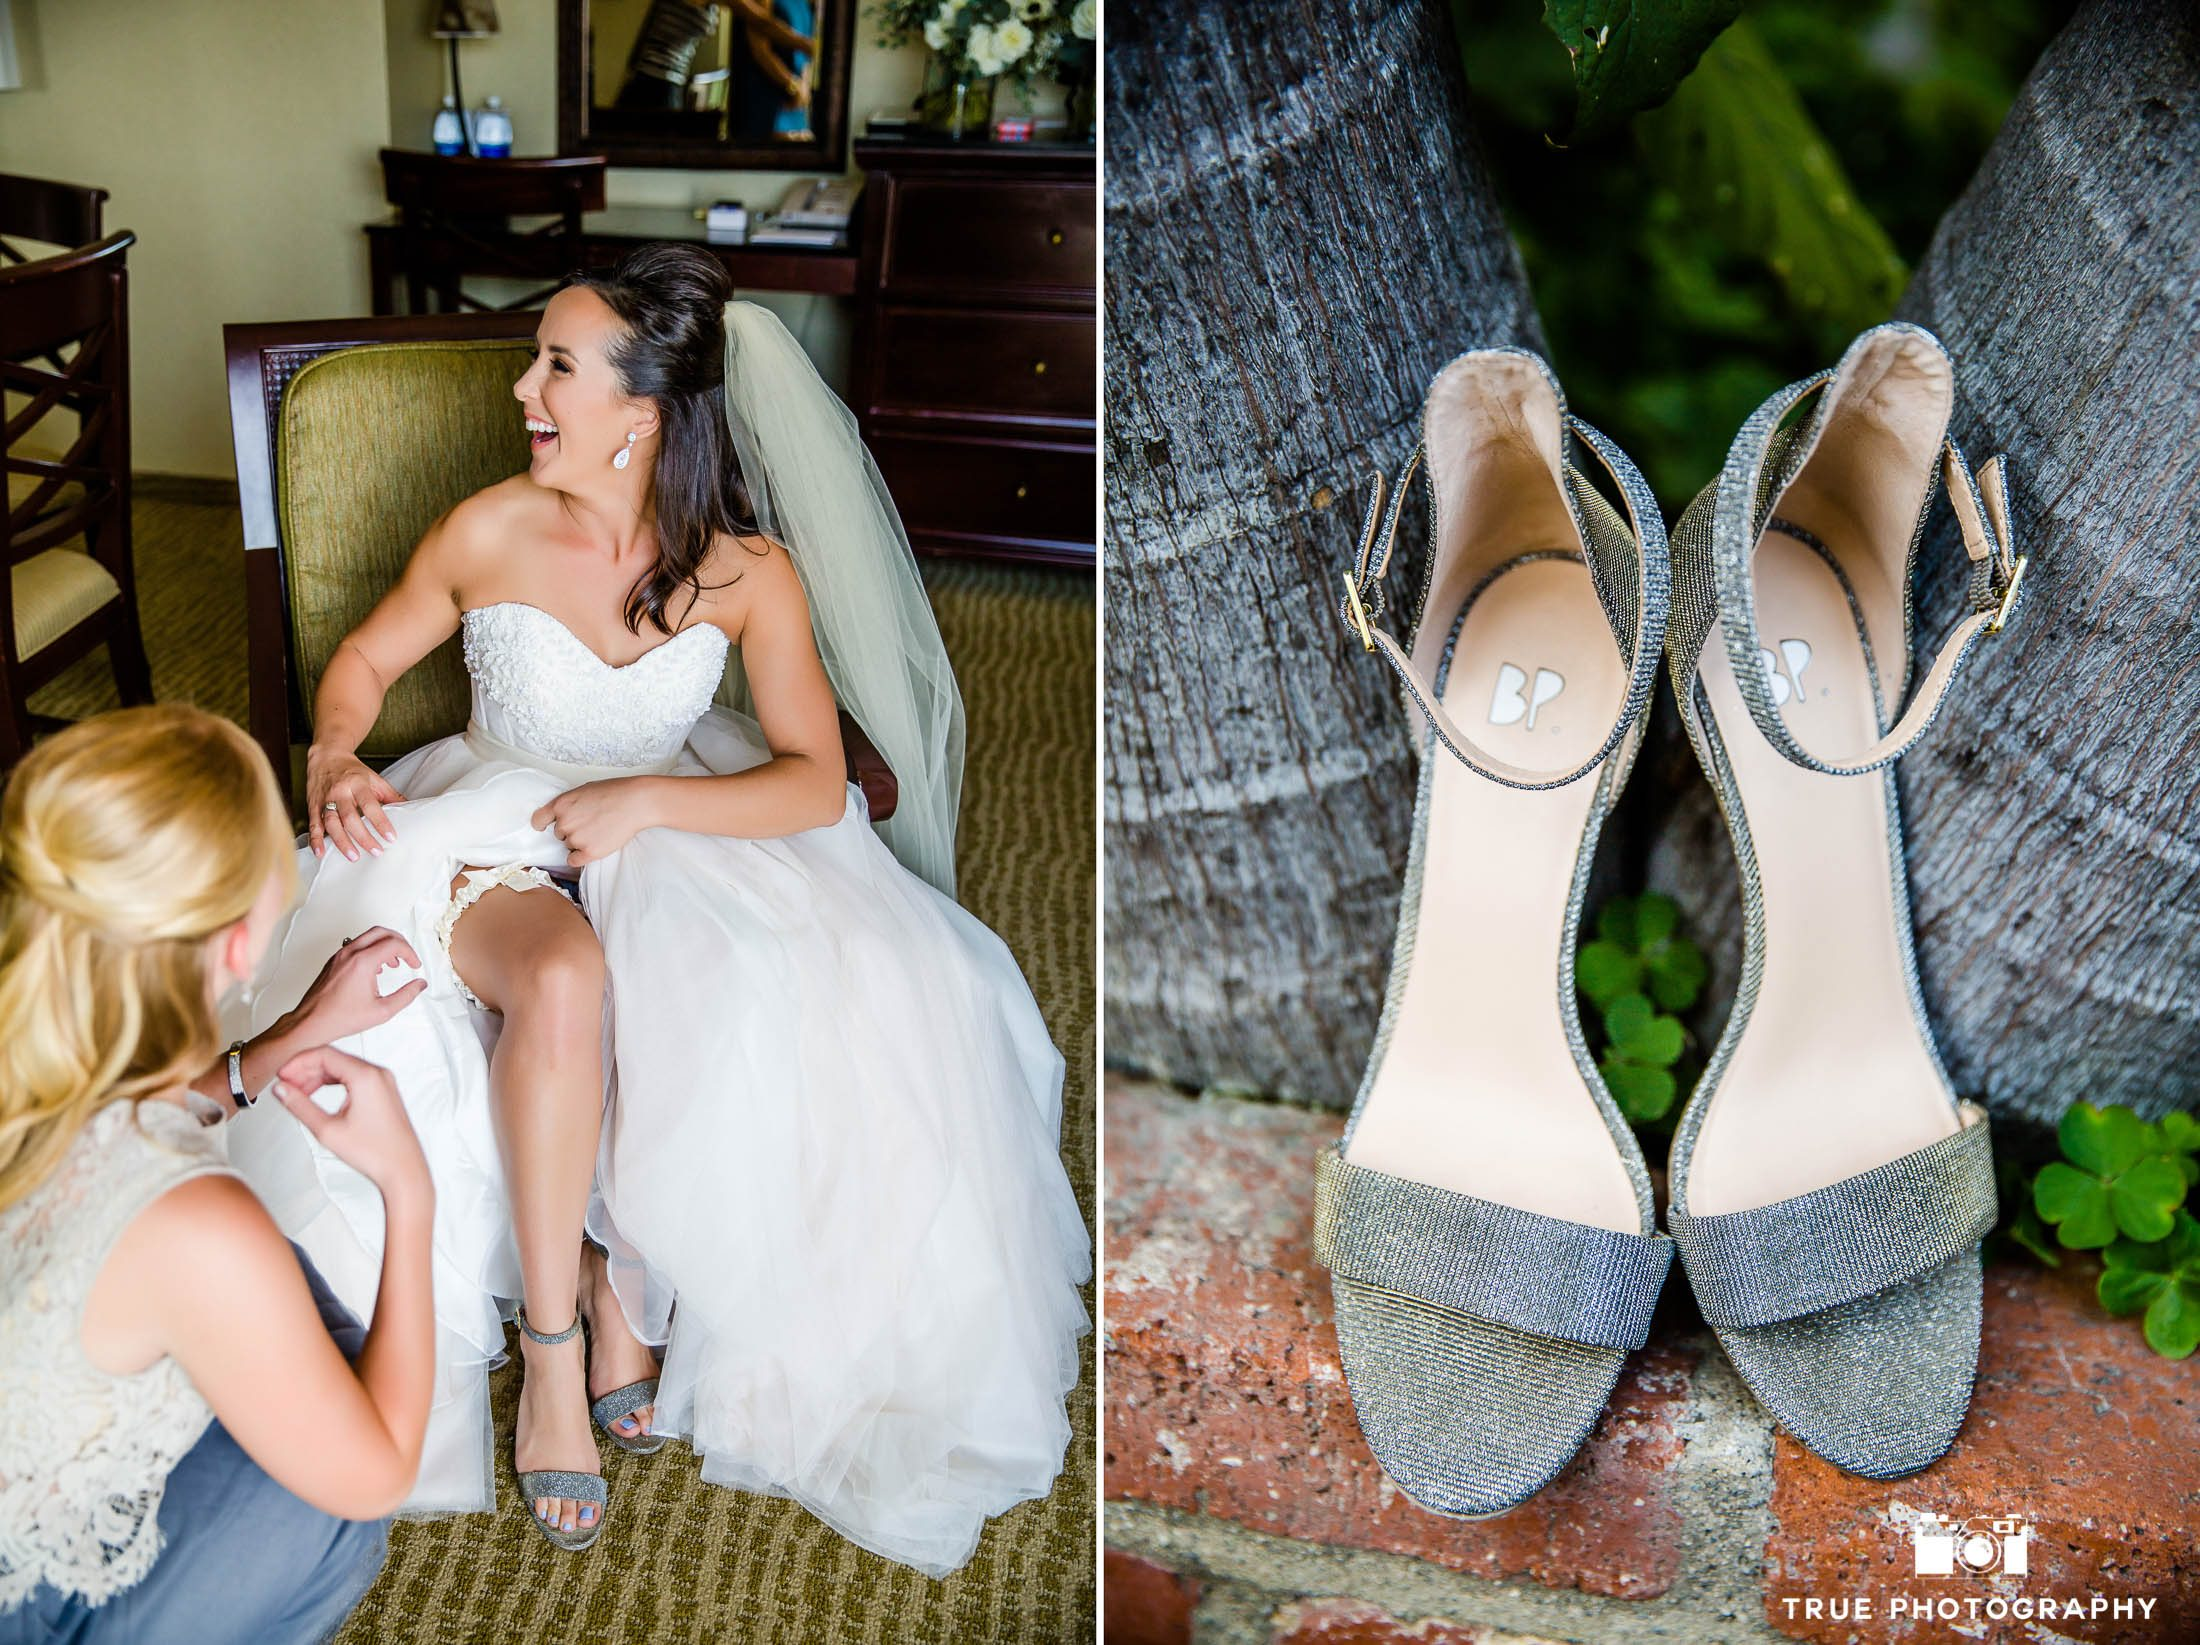 Bridesmaid helps Bride put on shoes